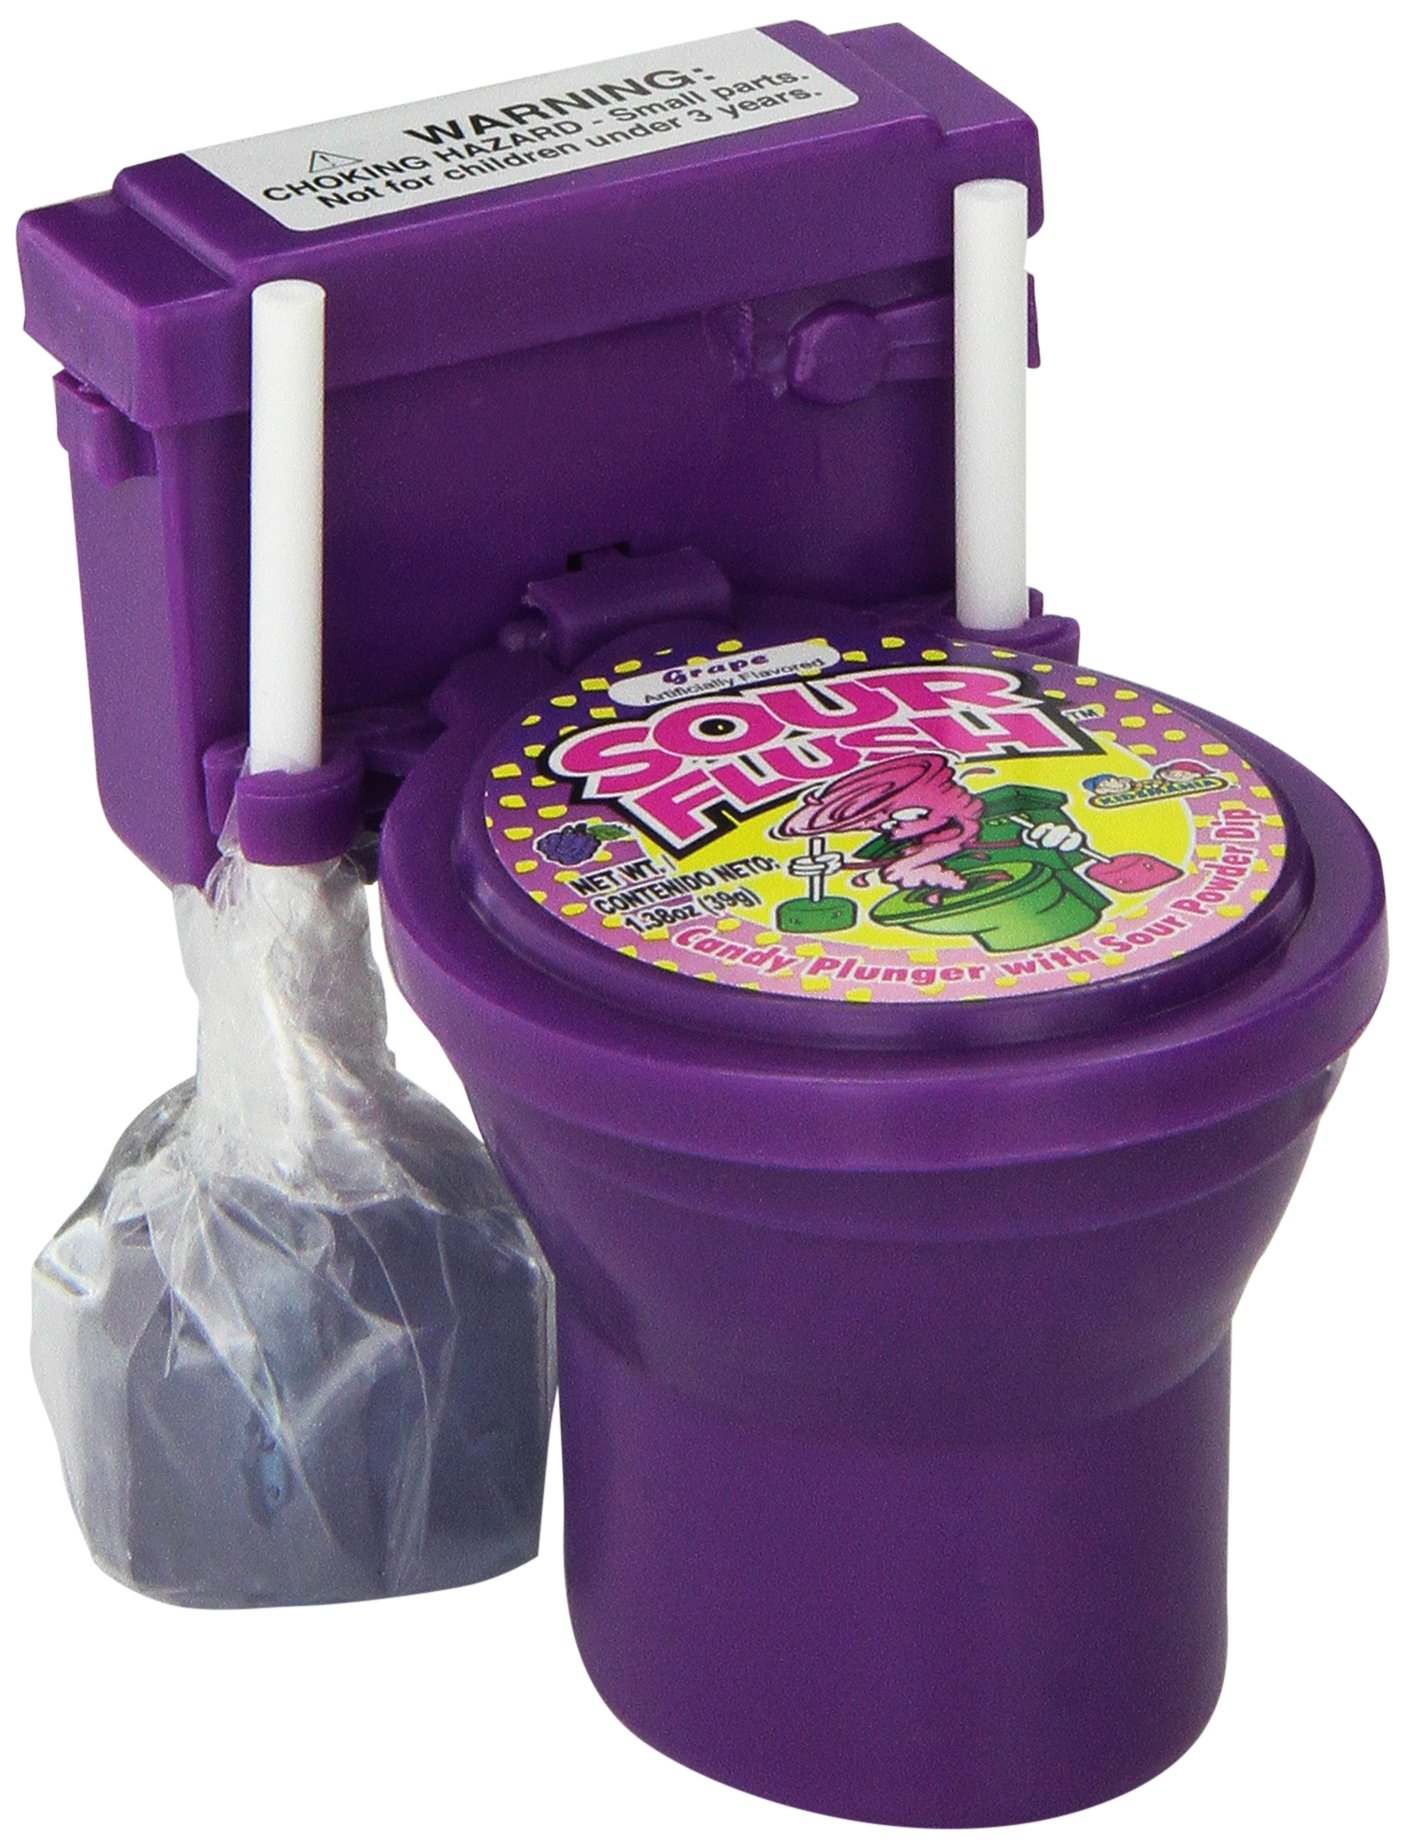 Sour Flush Candy Plugers And Powder Dip Toilet